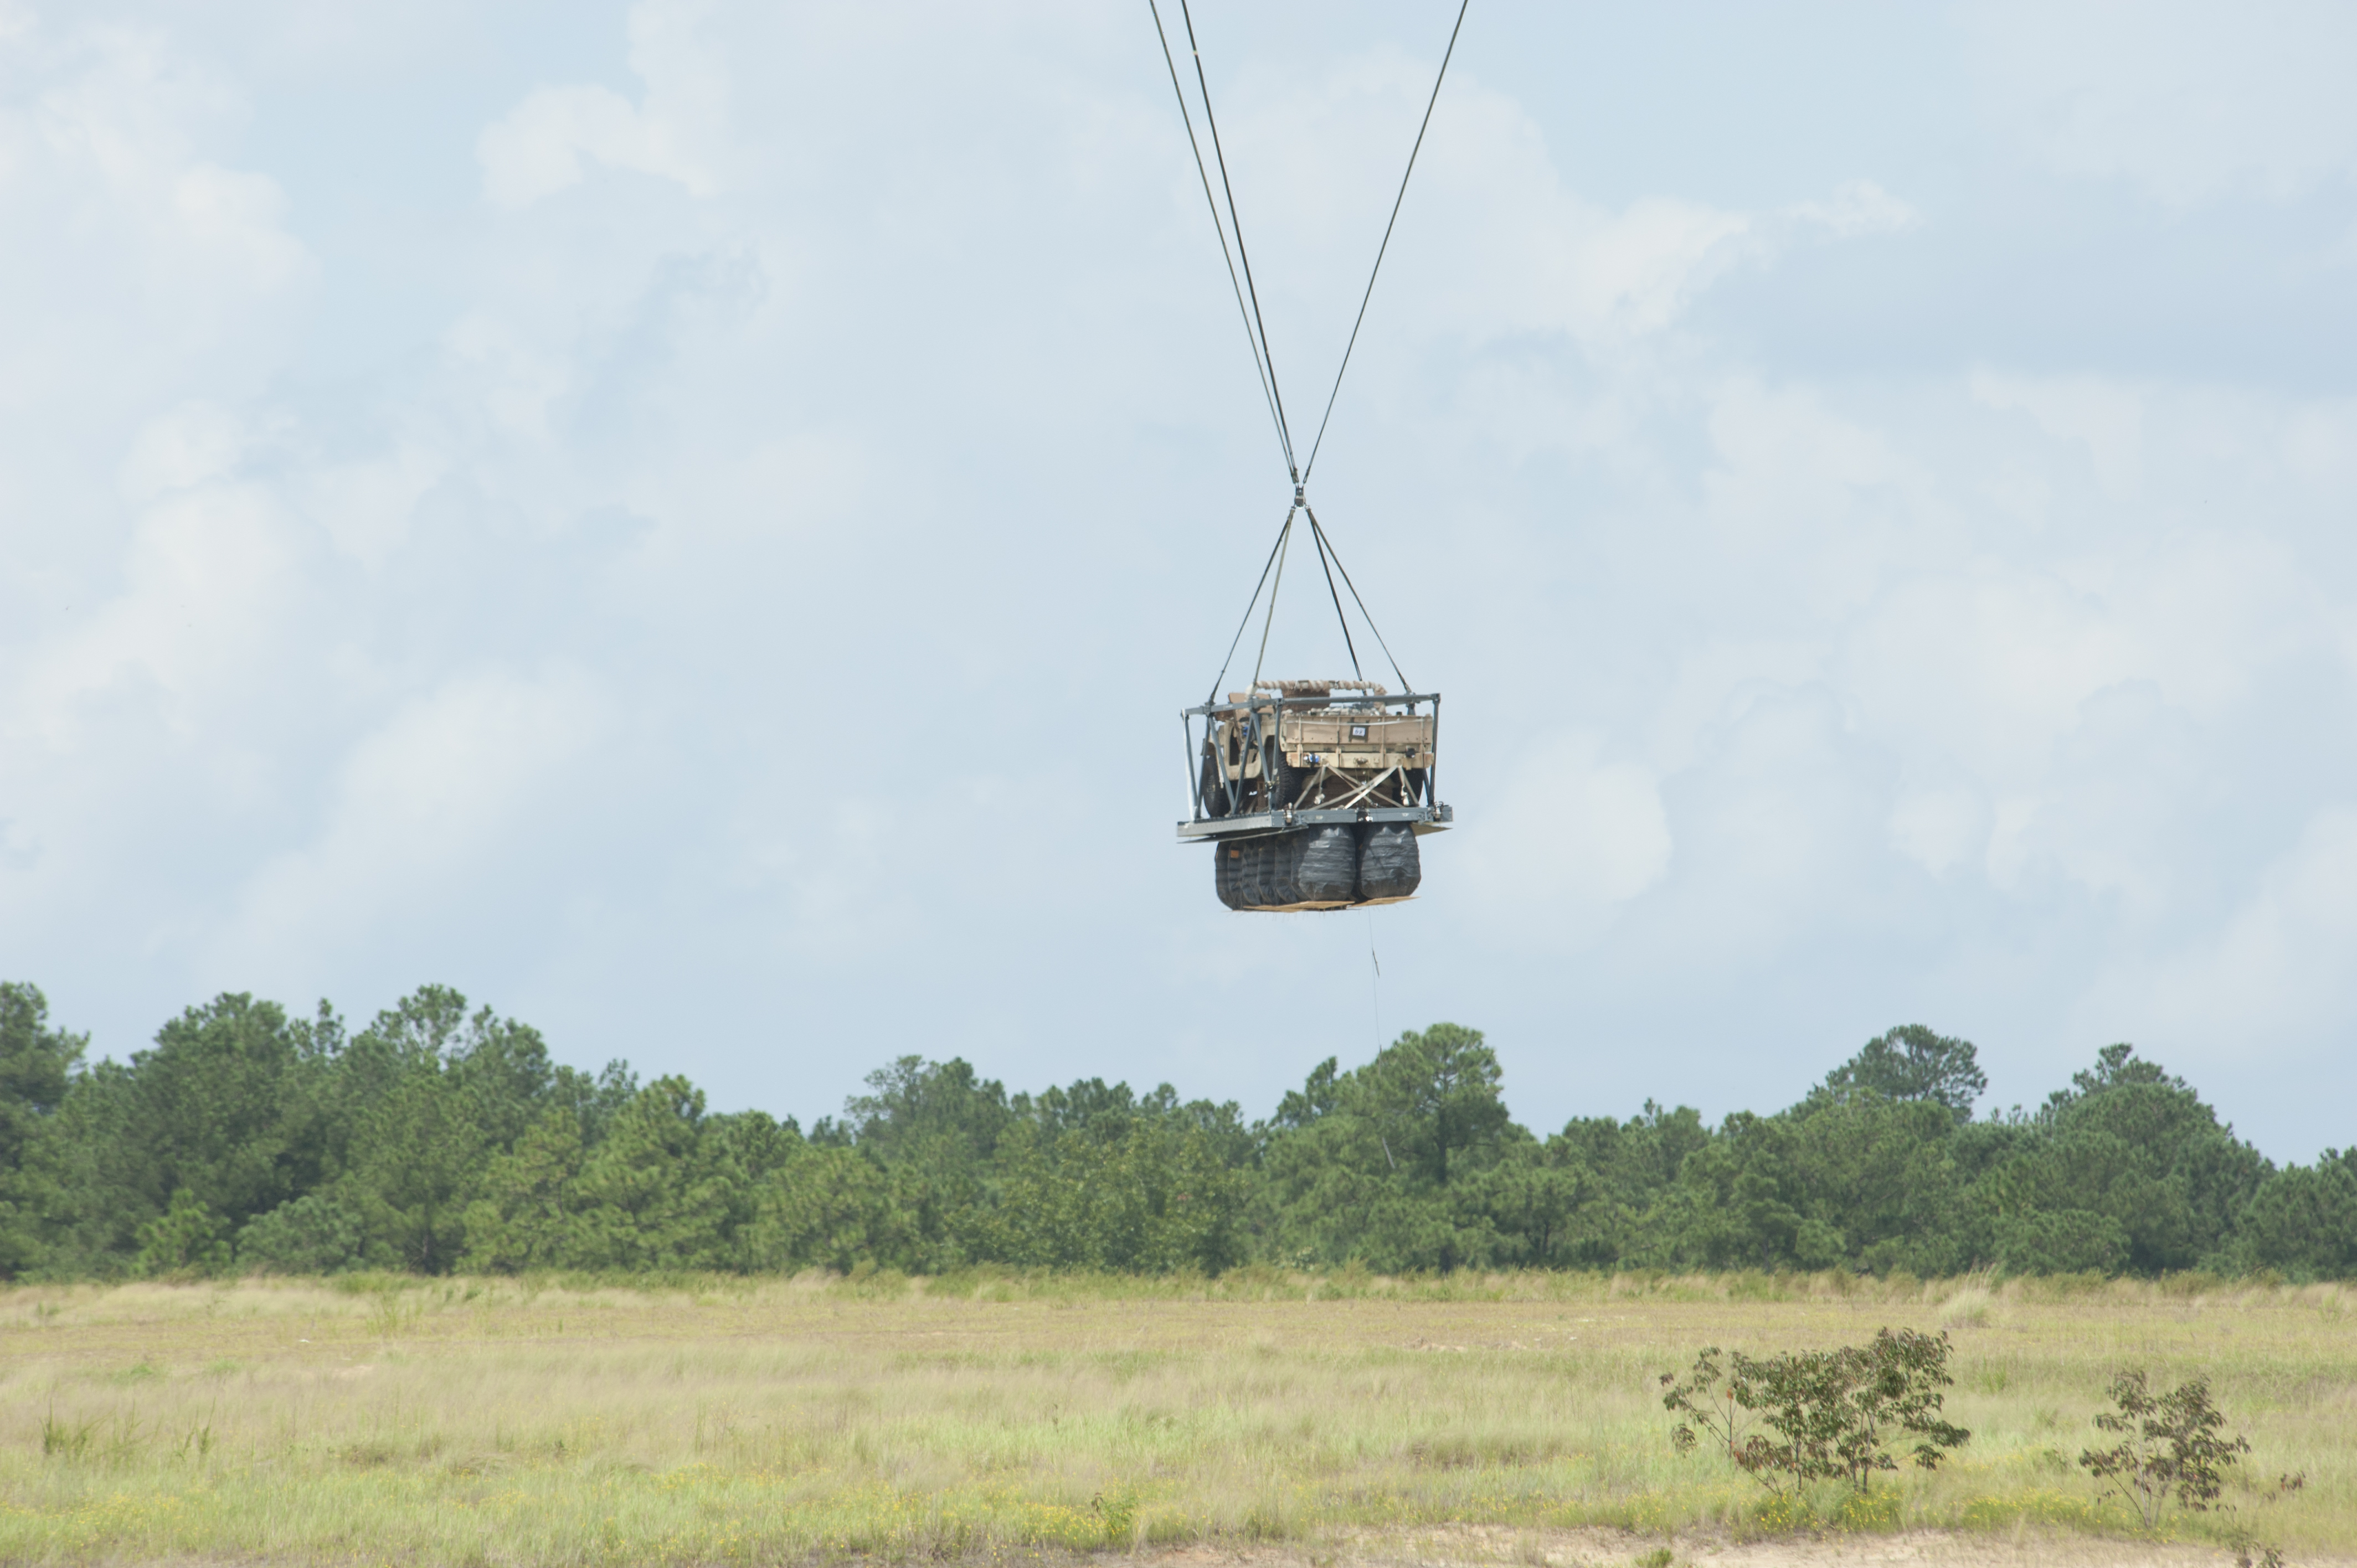 IrvinGQ medium weight loads aerial delivery airdrop system